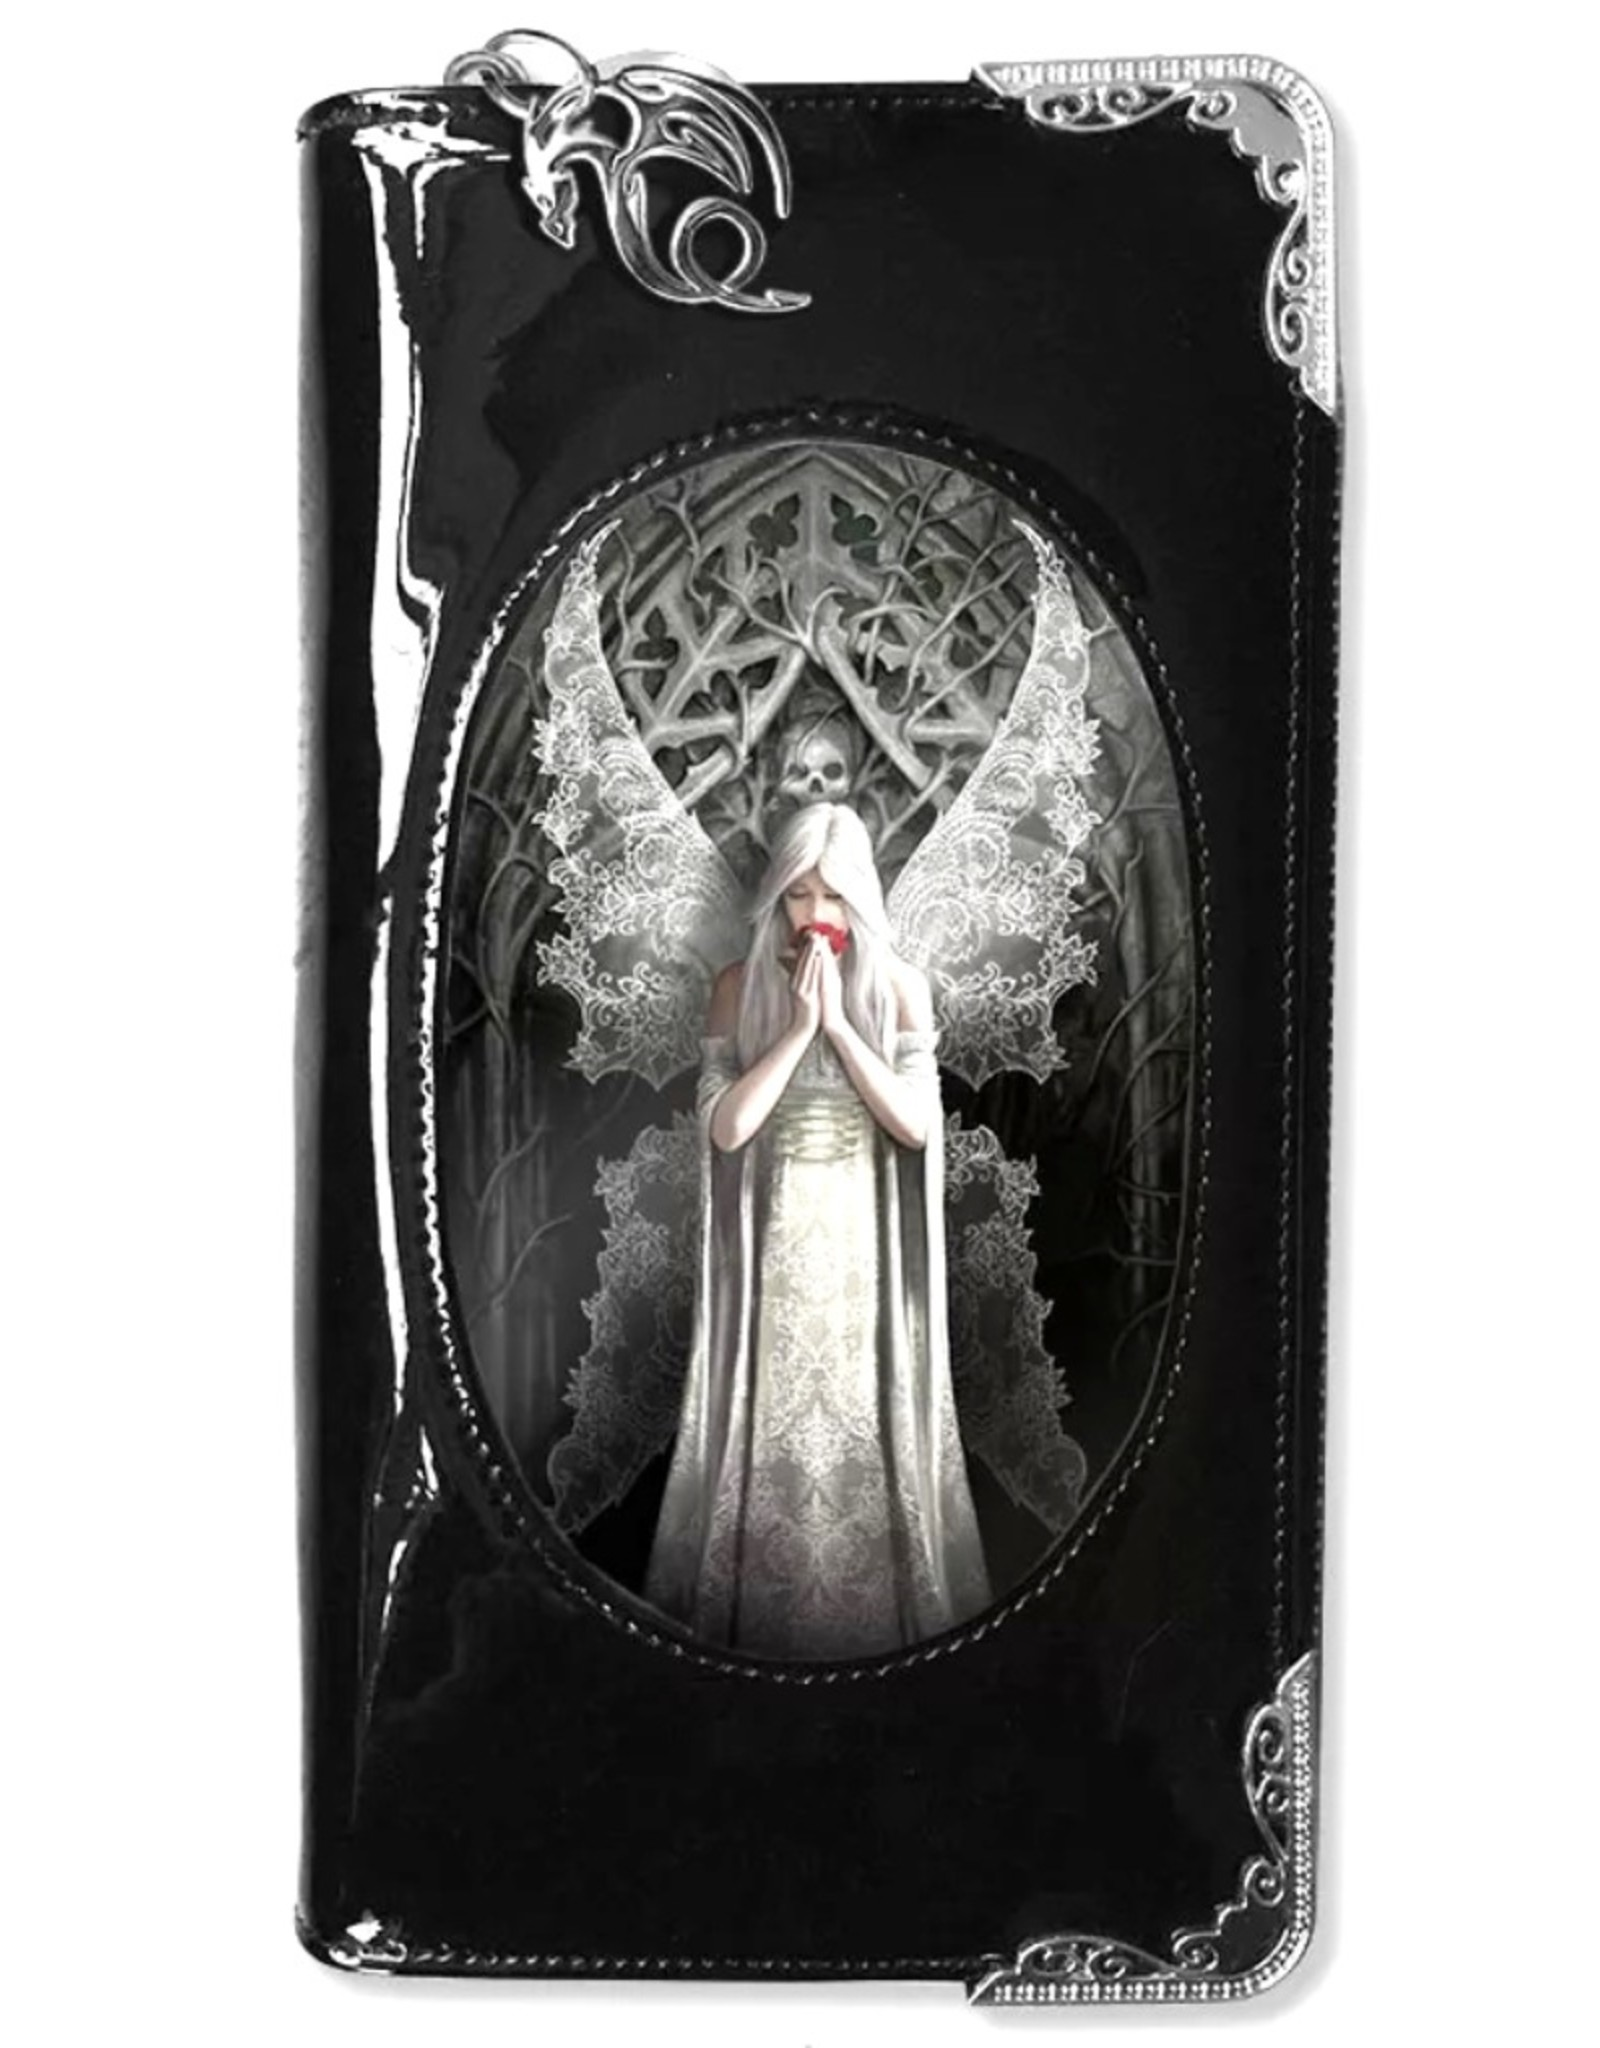 Anne Stokes Gothic en Steampunk portemonnees - Anne Stokes 3D portemonnee Only Love Remains